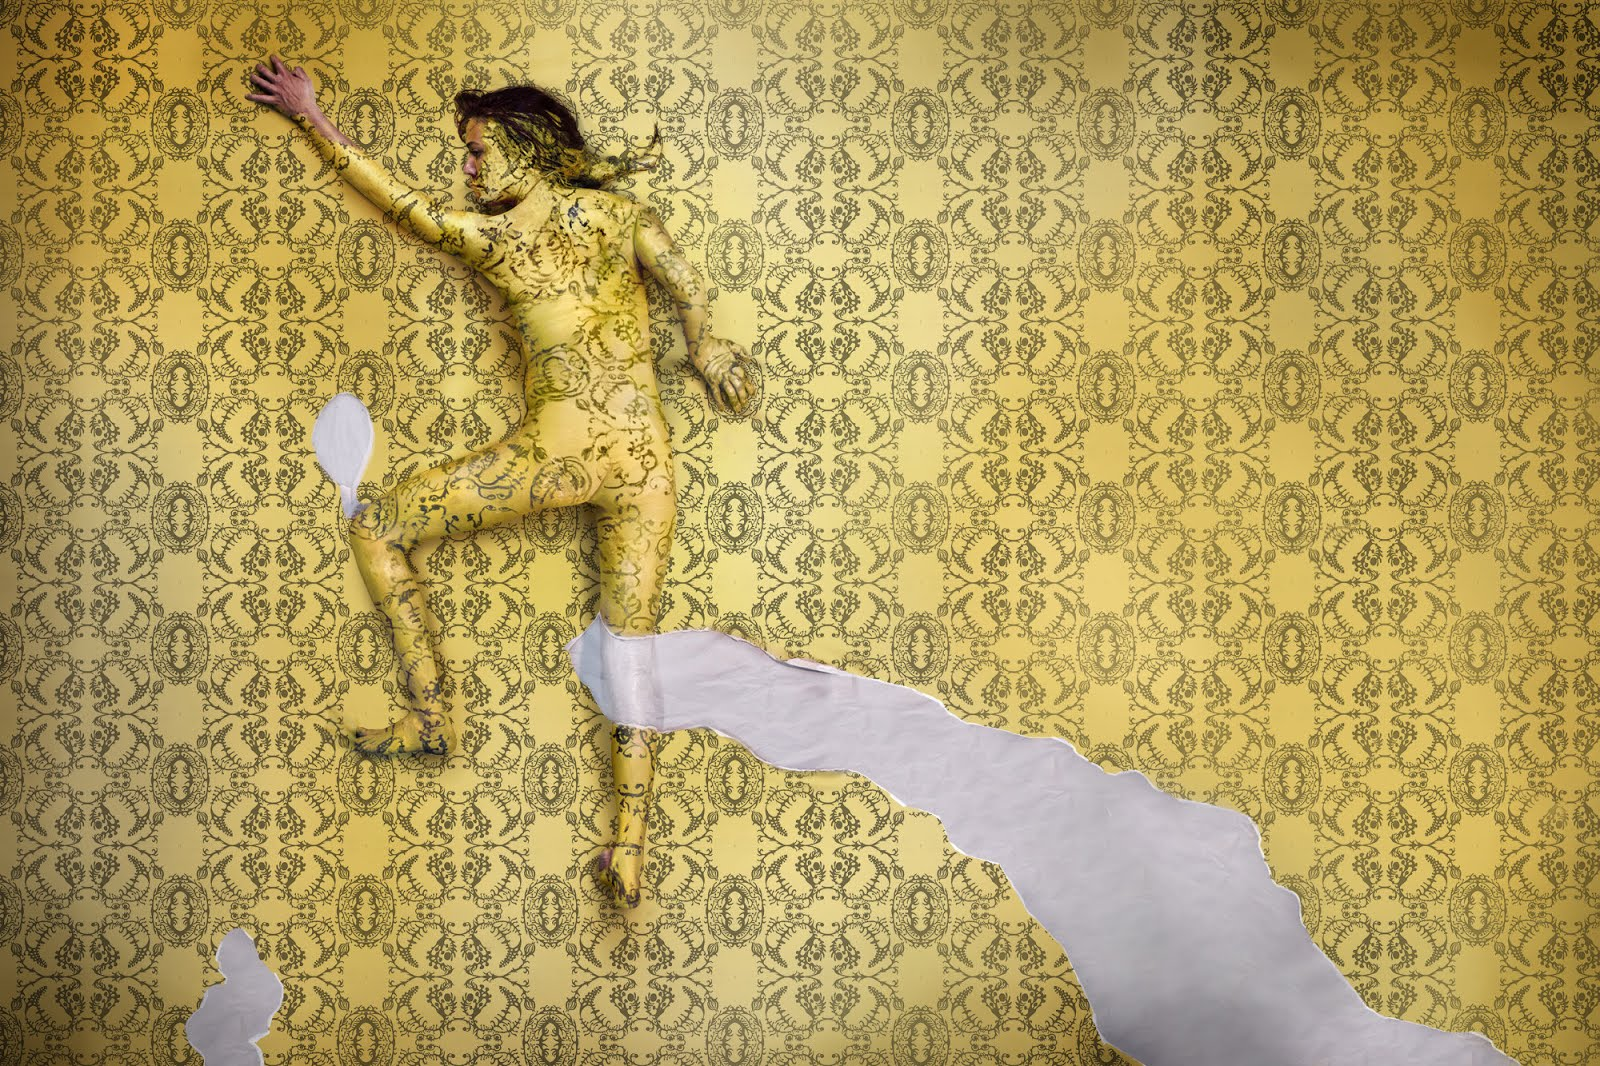 THE YELLOW WALLPAPER - Examining patriarchal views